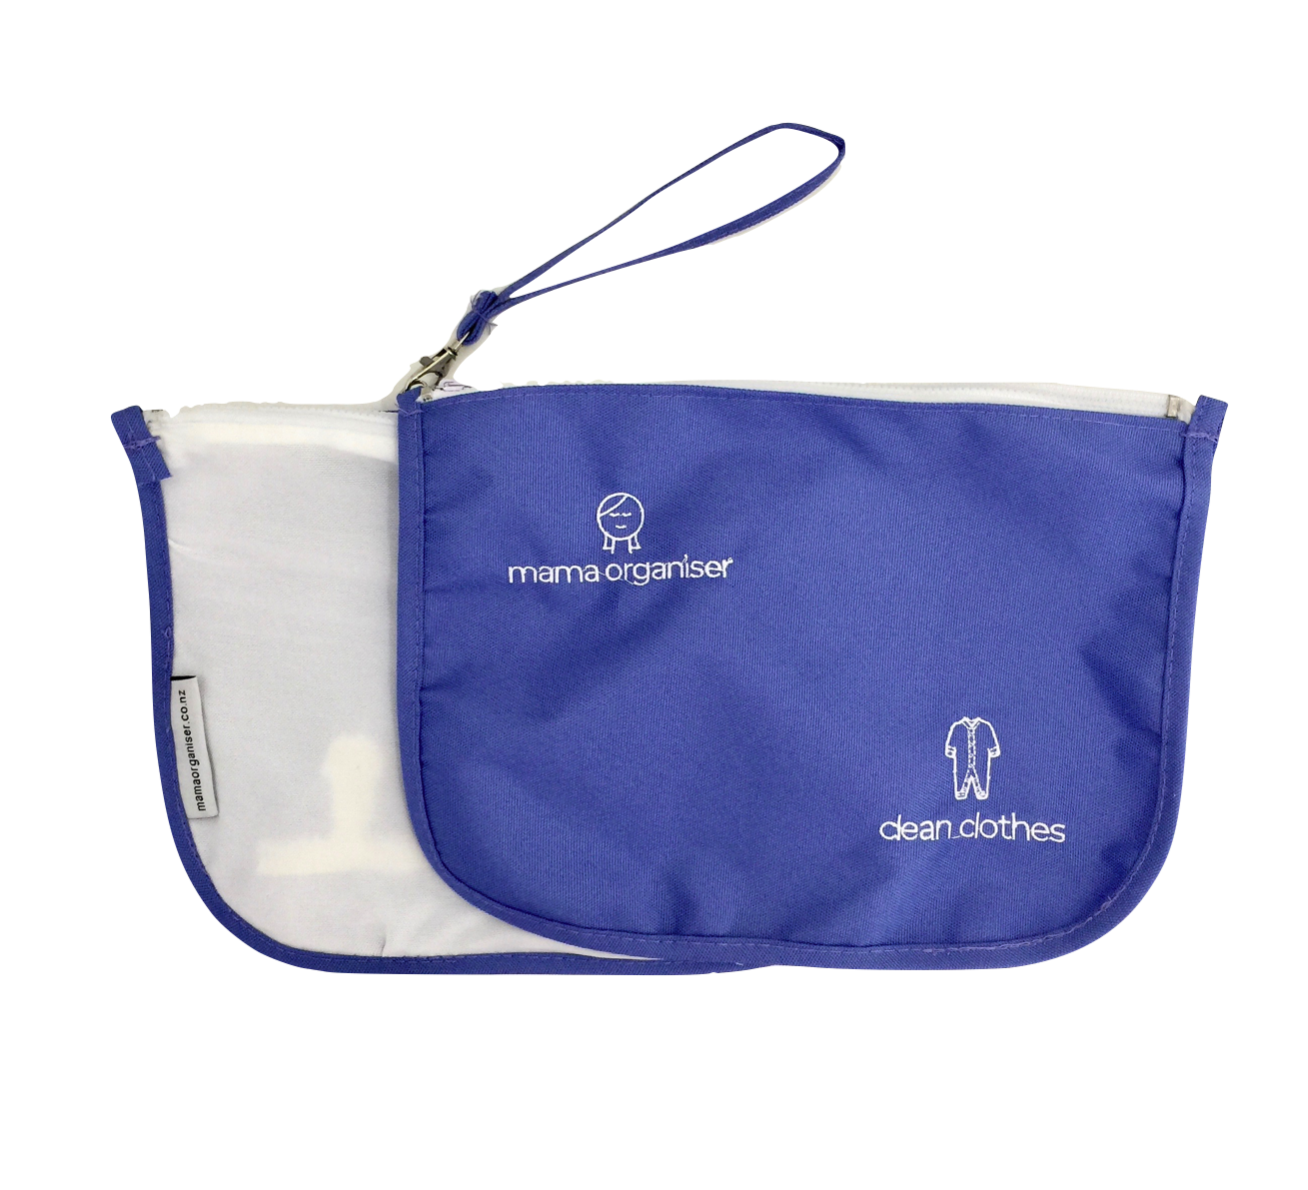 Clean Clothes Pouch - Clean Clothes Pouch: Dark blue water-resistant nylon on one side and white stretch mesh on the other. fits several changes of clothes. Great in changeable seasons or when your child likes to frequently get dirty!